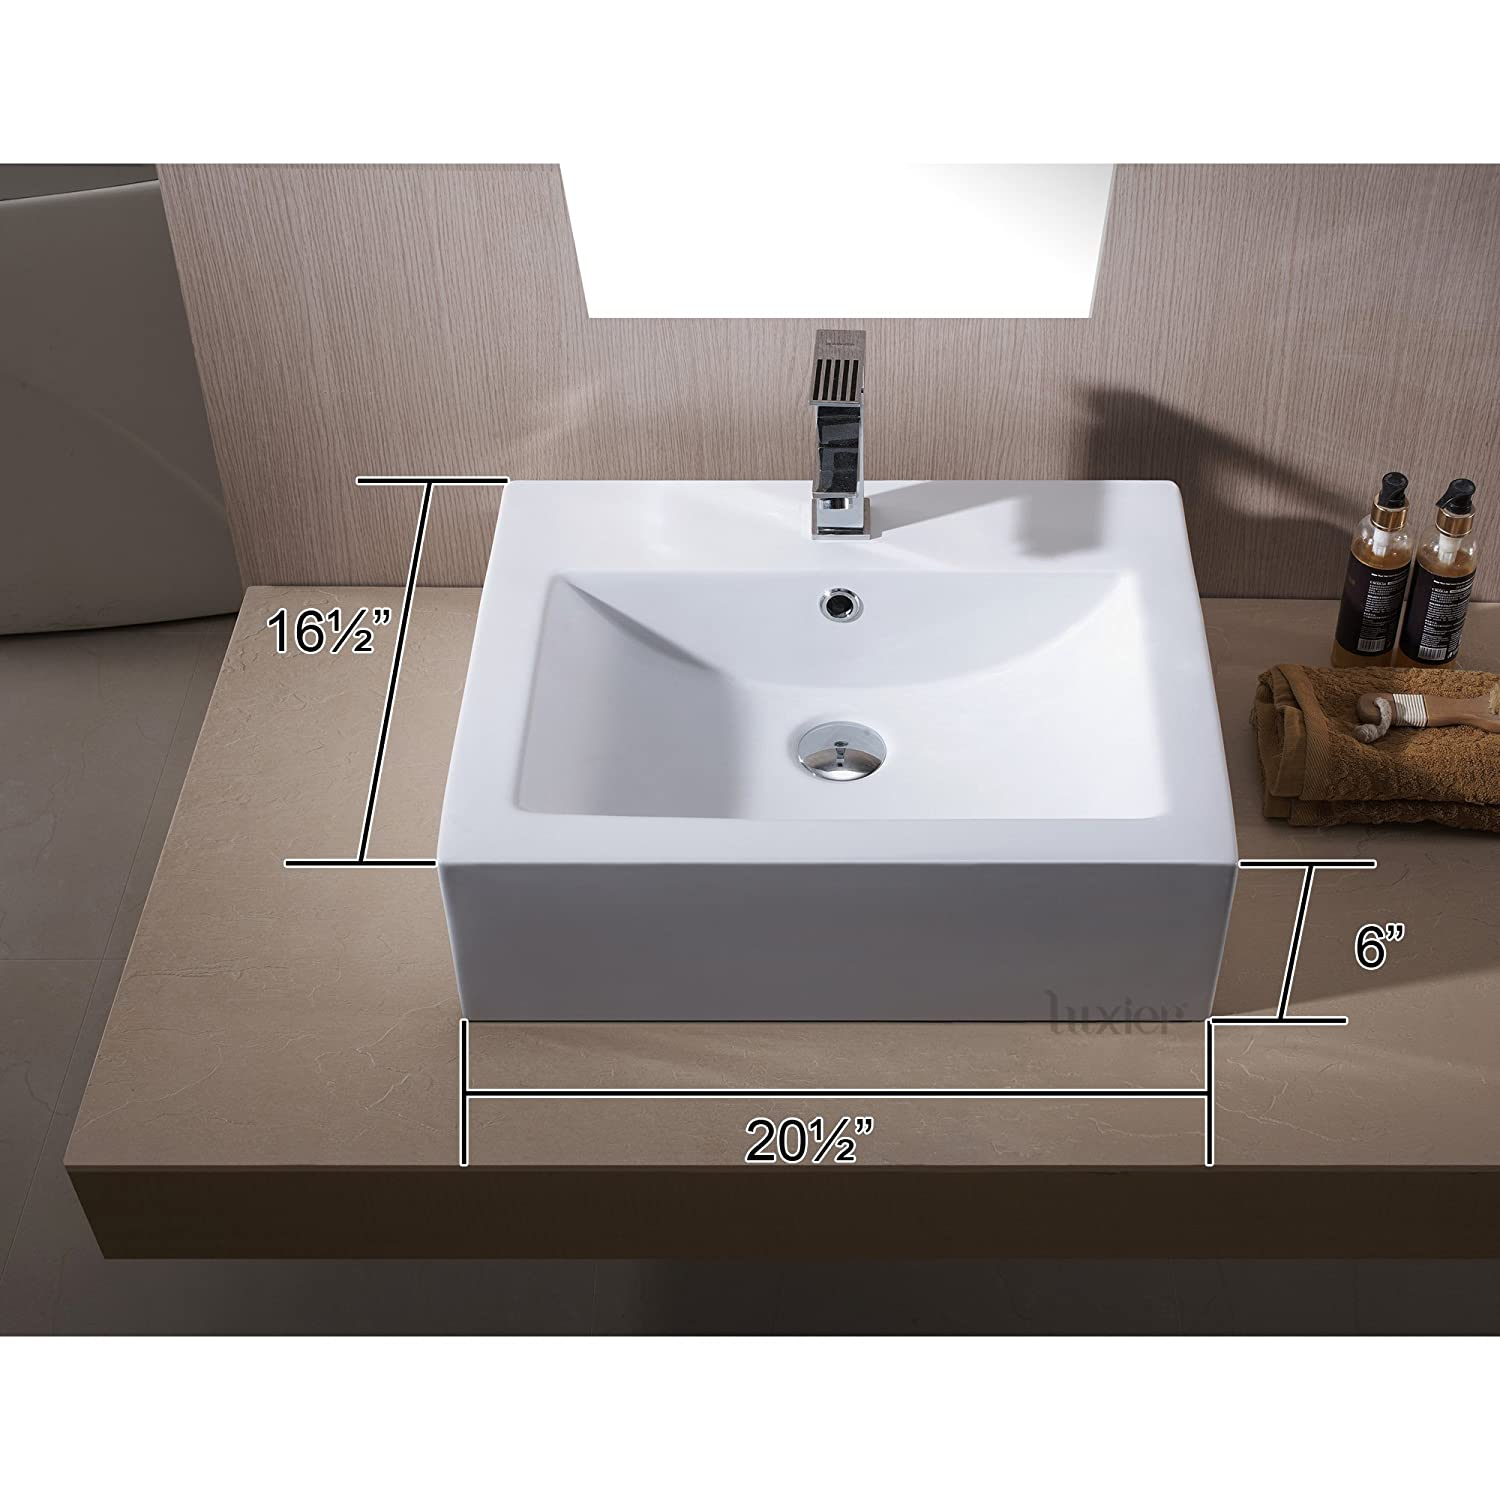 Luxier Cs Bathroom Porcelain Ceramic Vessel Vanity Sink Art